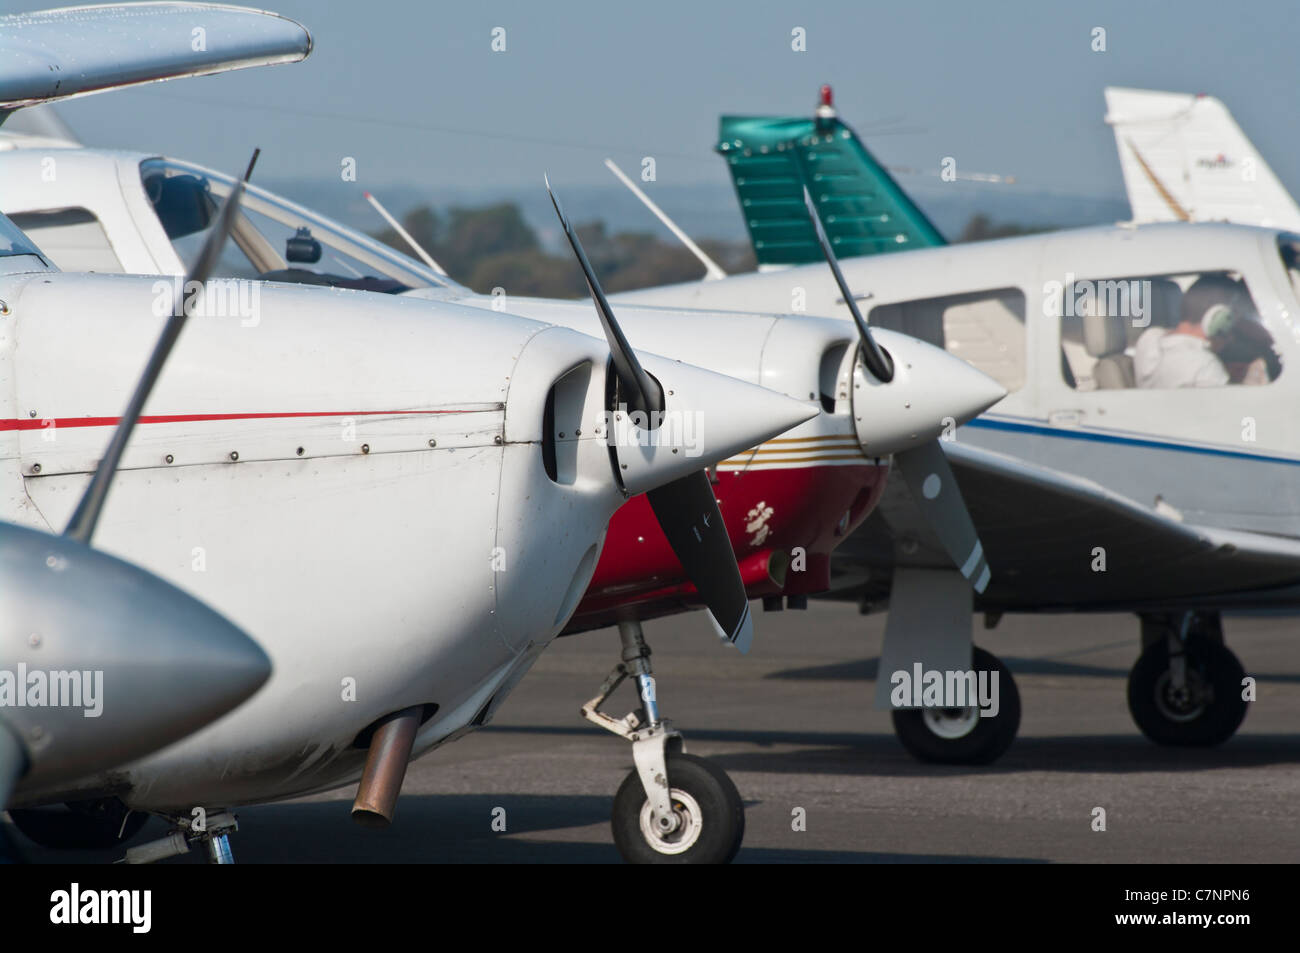 Propellers On Small Single Engine Light Aircraft Airplane Plane - Stock Image